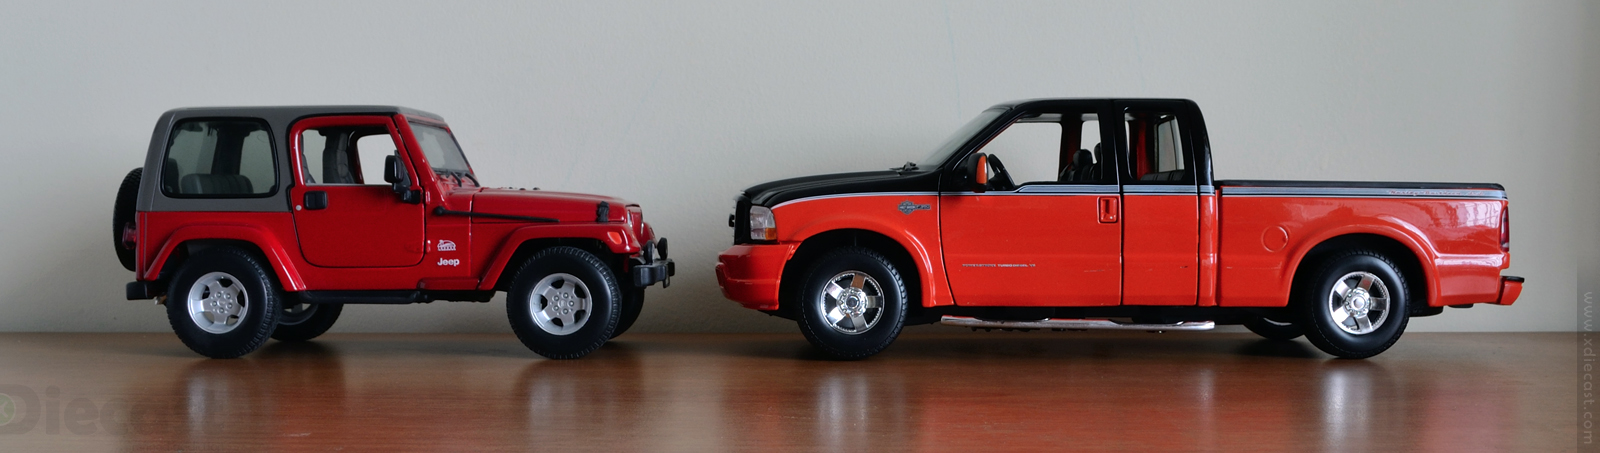 Size Comparison Jeep Wrangler vs Ford F350 HD